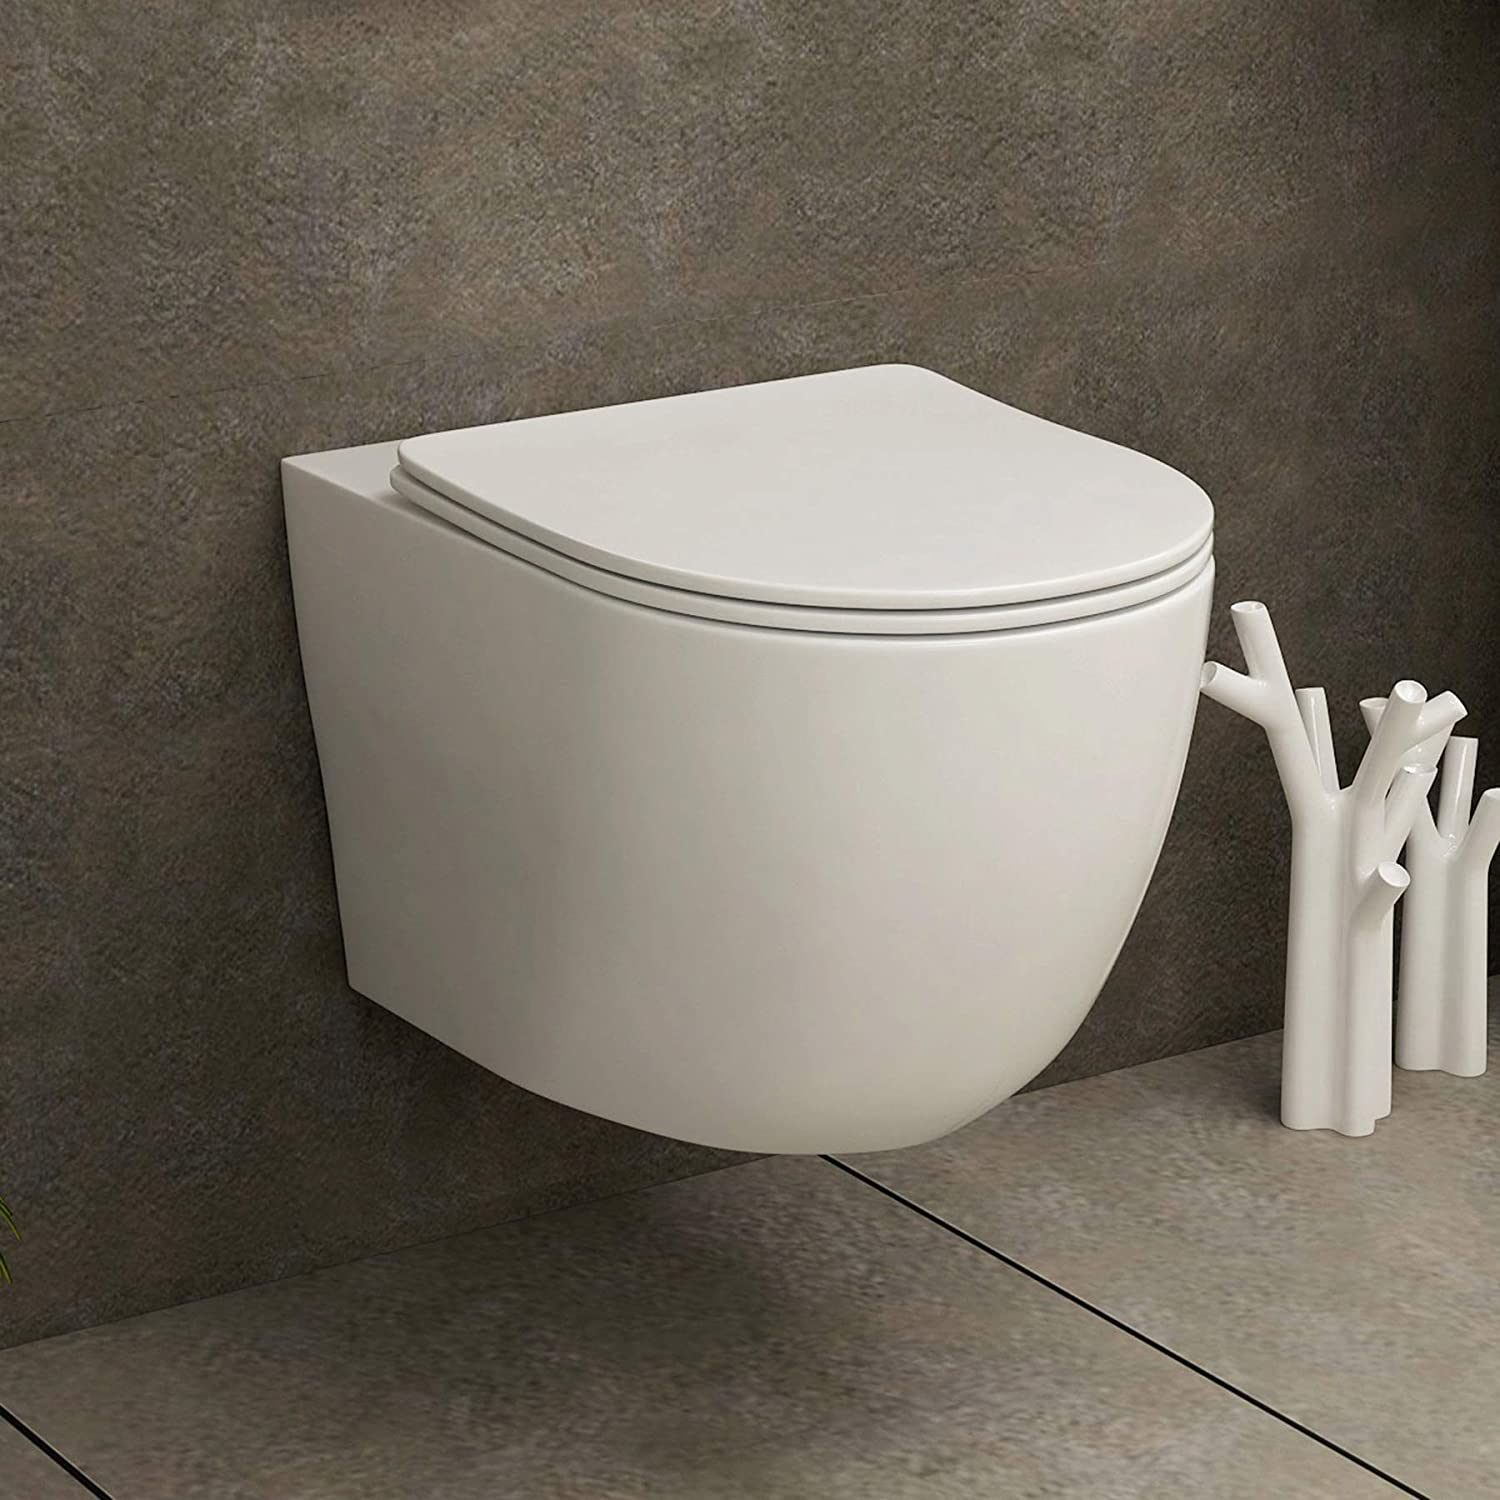 Modern 360mm Bathroom Short Projection Rimless Wall Hung Toilet with Soft Close Seat